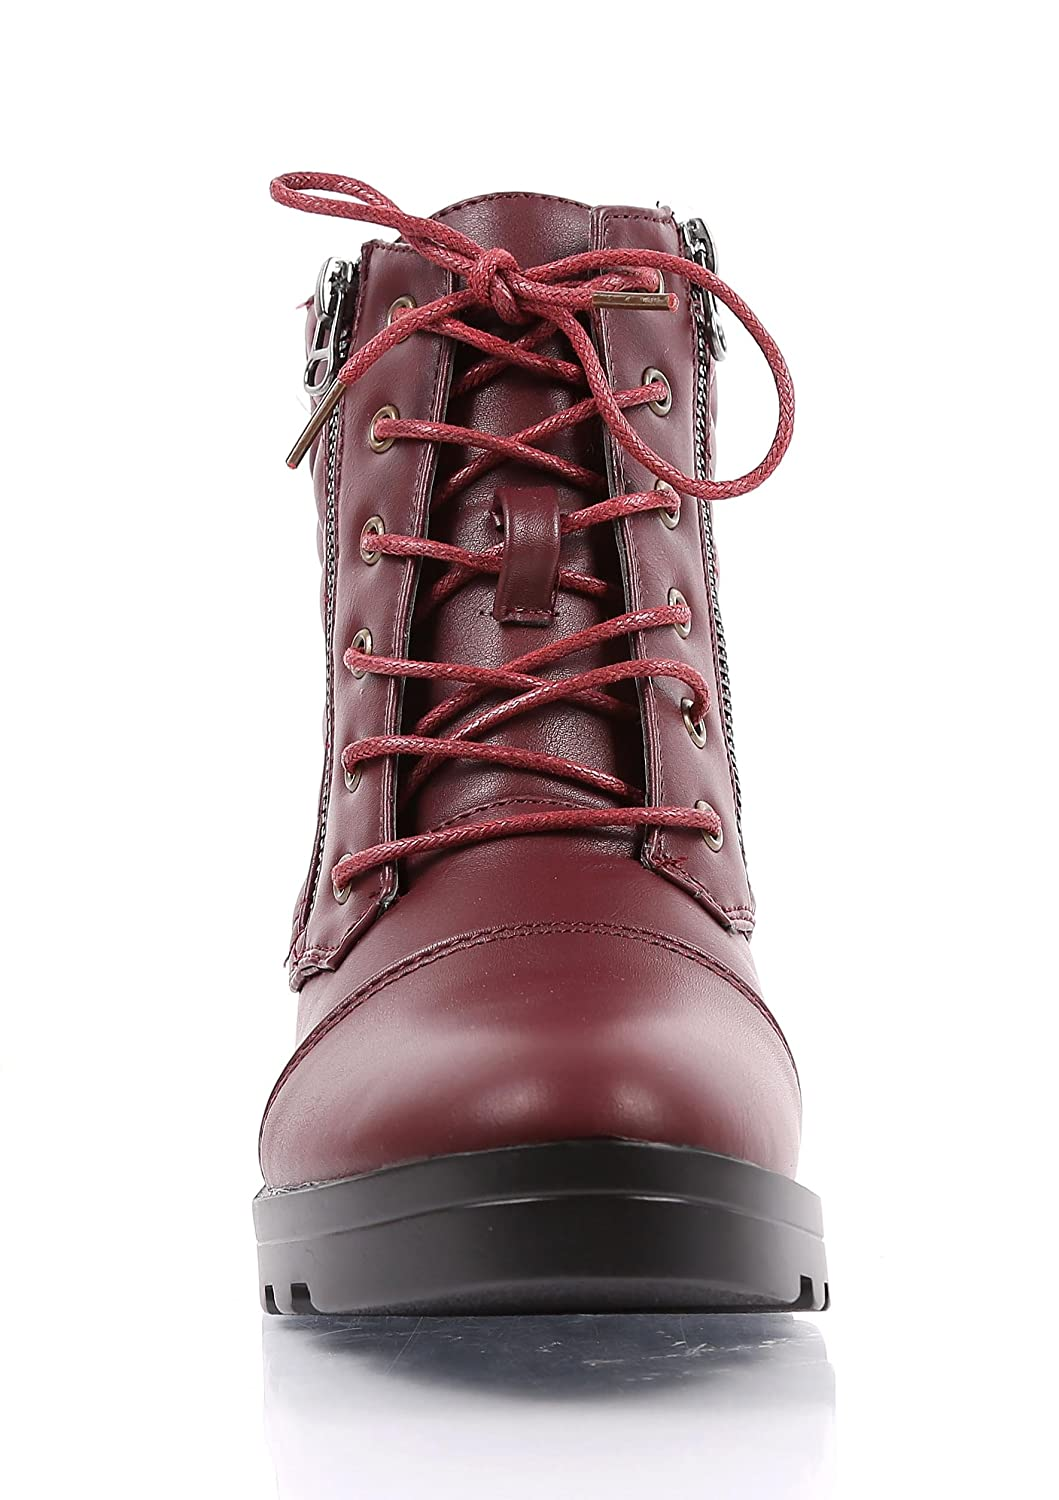 New 2 Colors Pu Leather Decoration Zipper Laces Womens Fashion Quilted Pattern Ankle-High Combat Boots Shoes